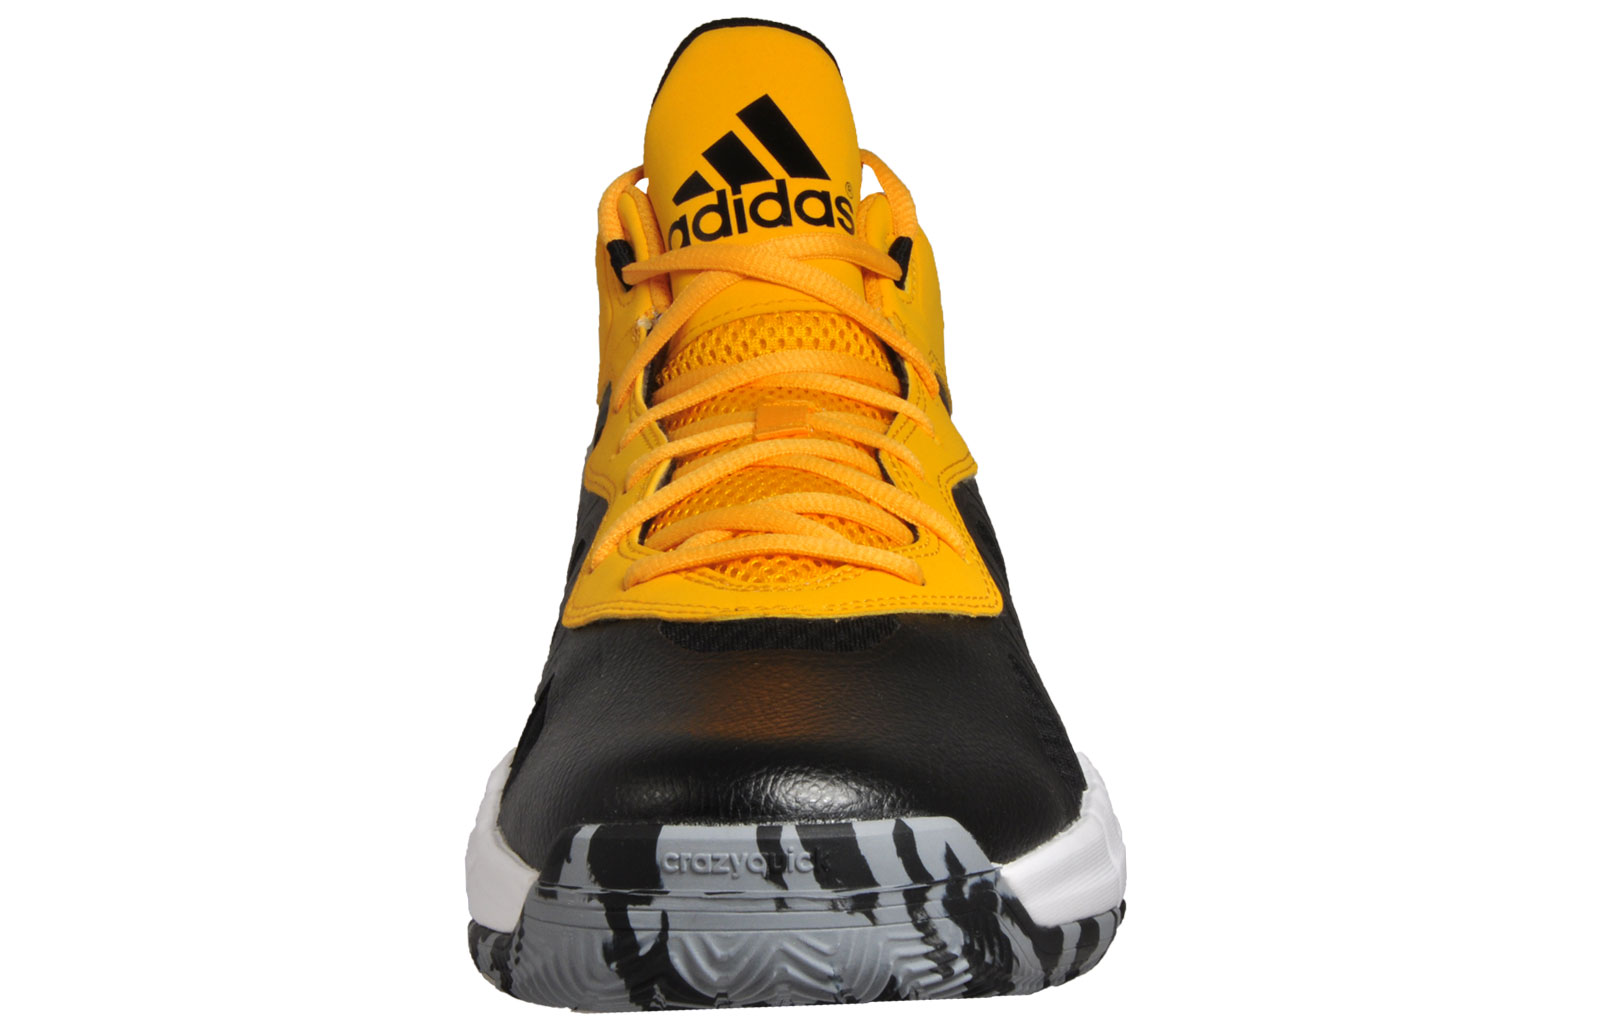 d49c82c8f Adidas Crazyquick 2.5 Low Jeremy Lin 17 Mens Basketball Shoes Black Yellow